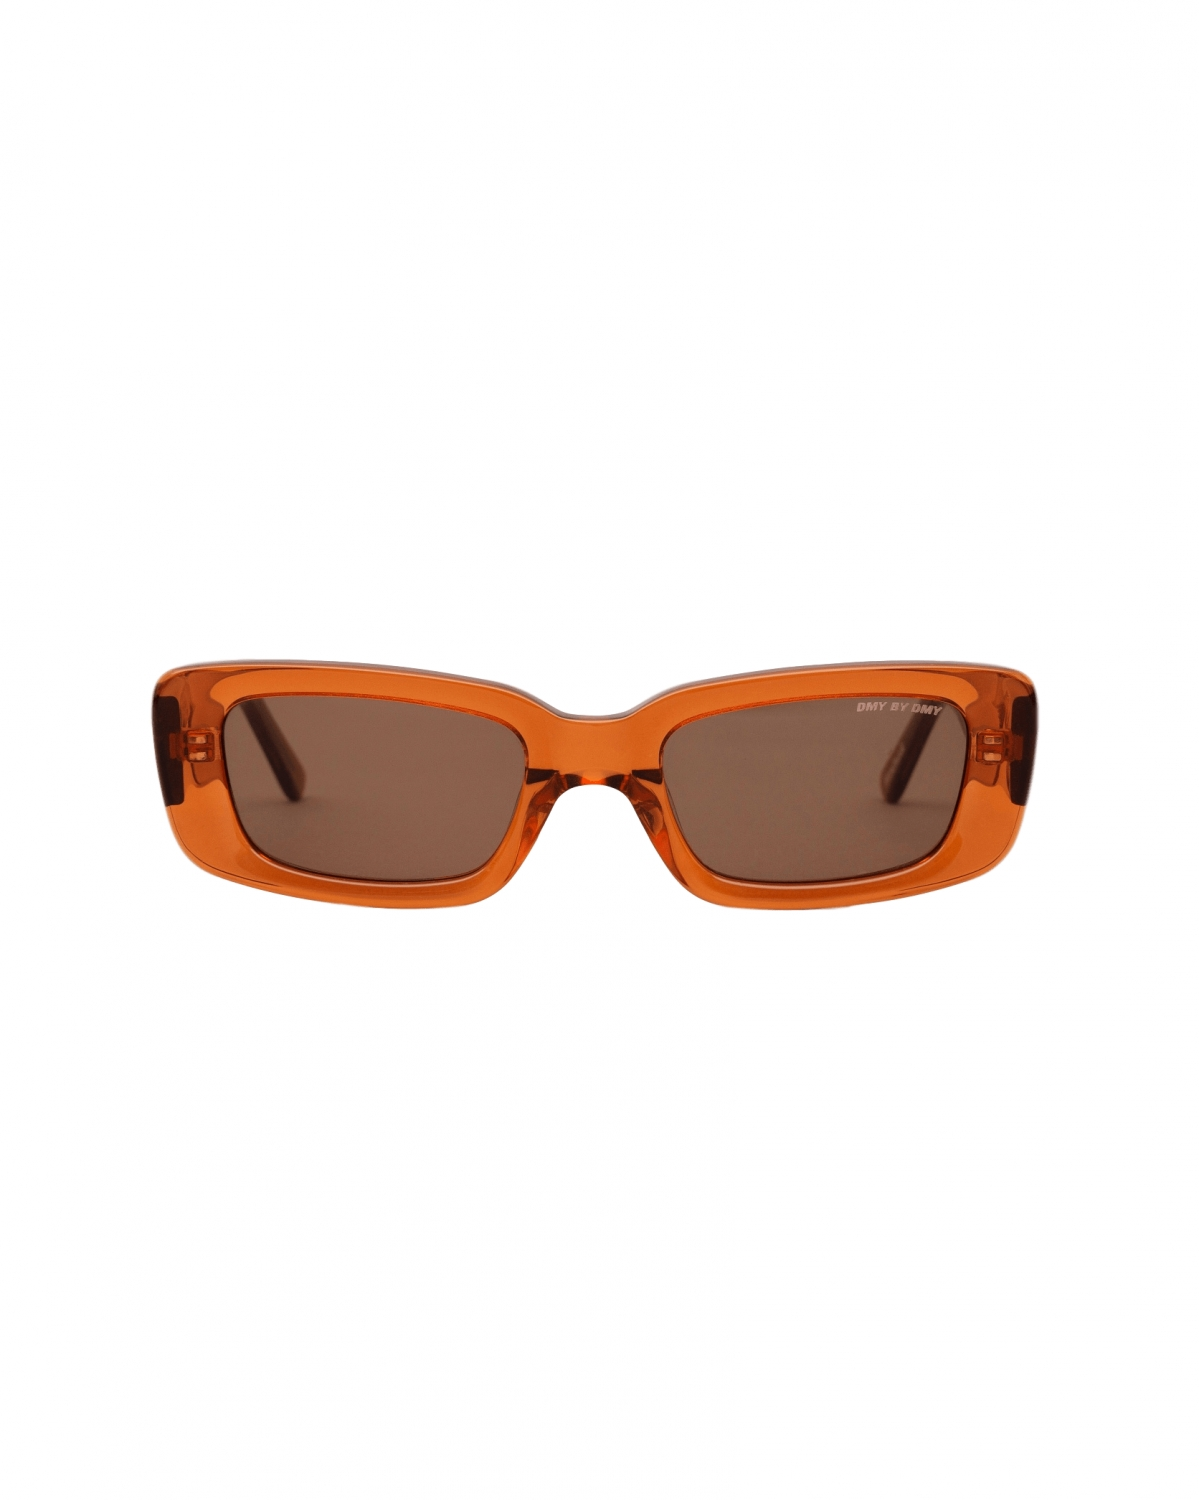 PRESTON (TRANSPARENT AMBER) Rectangular sunglasses handcrafted from Italian acetate and featuring soft brown l by DMY BY DMY, available on dmybydmy.com for BPS140 Kourtney Kardashian Sunglasses Exact Product